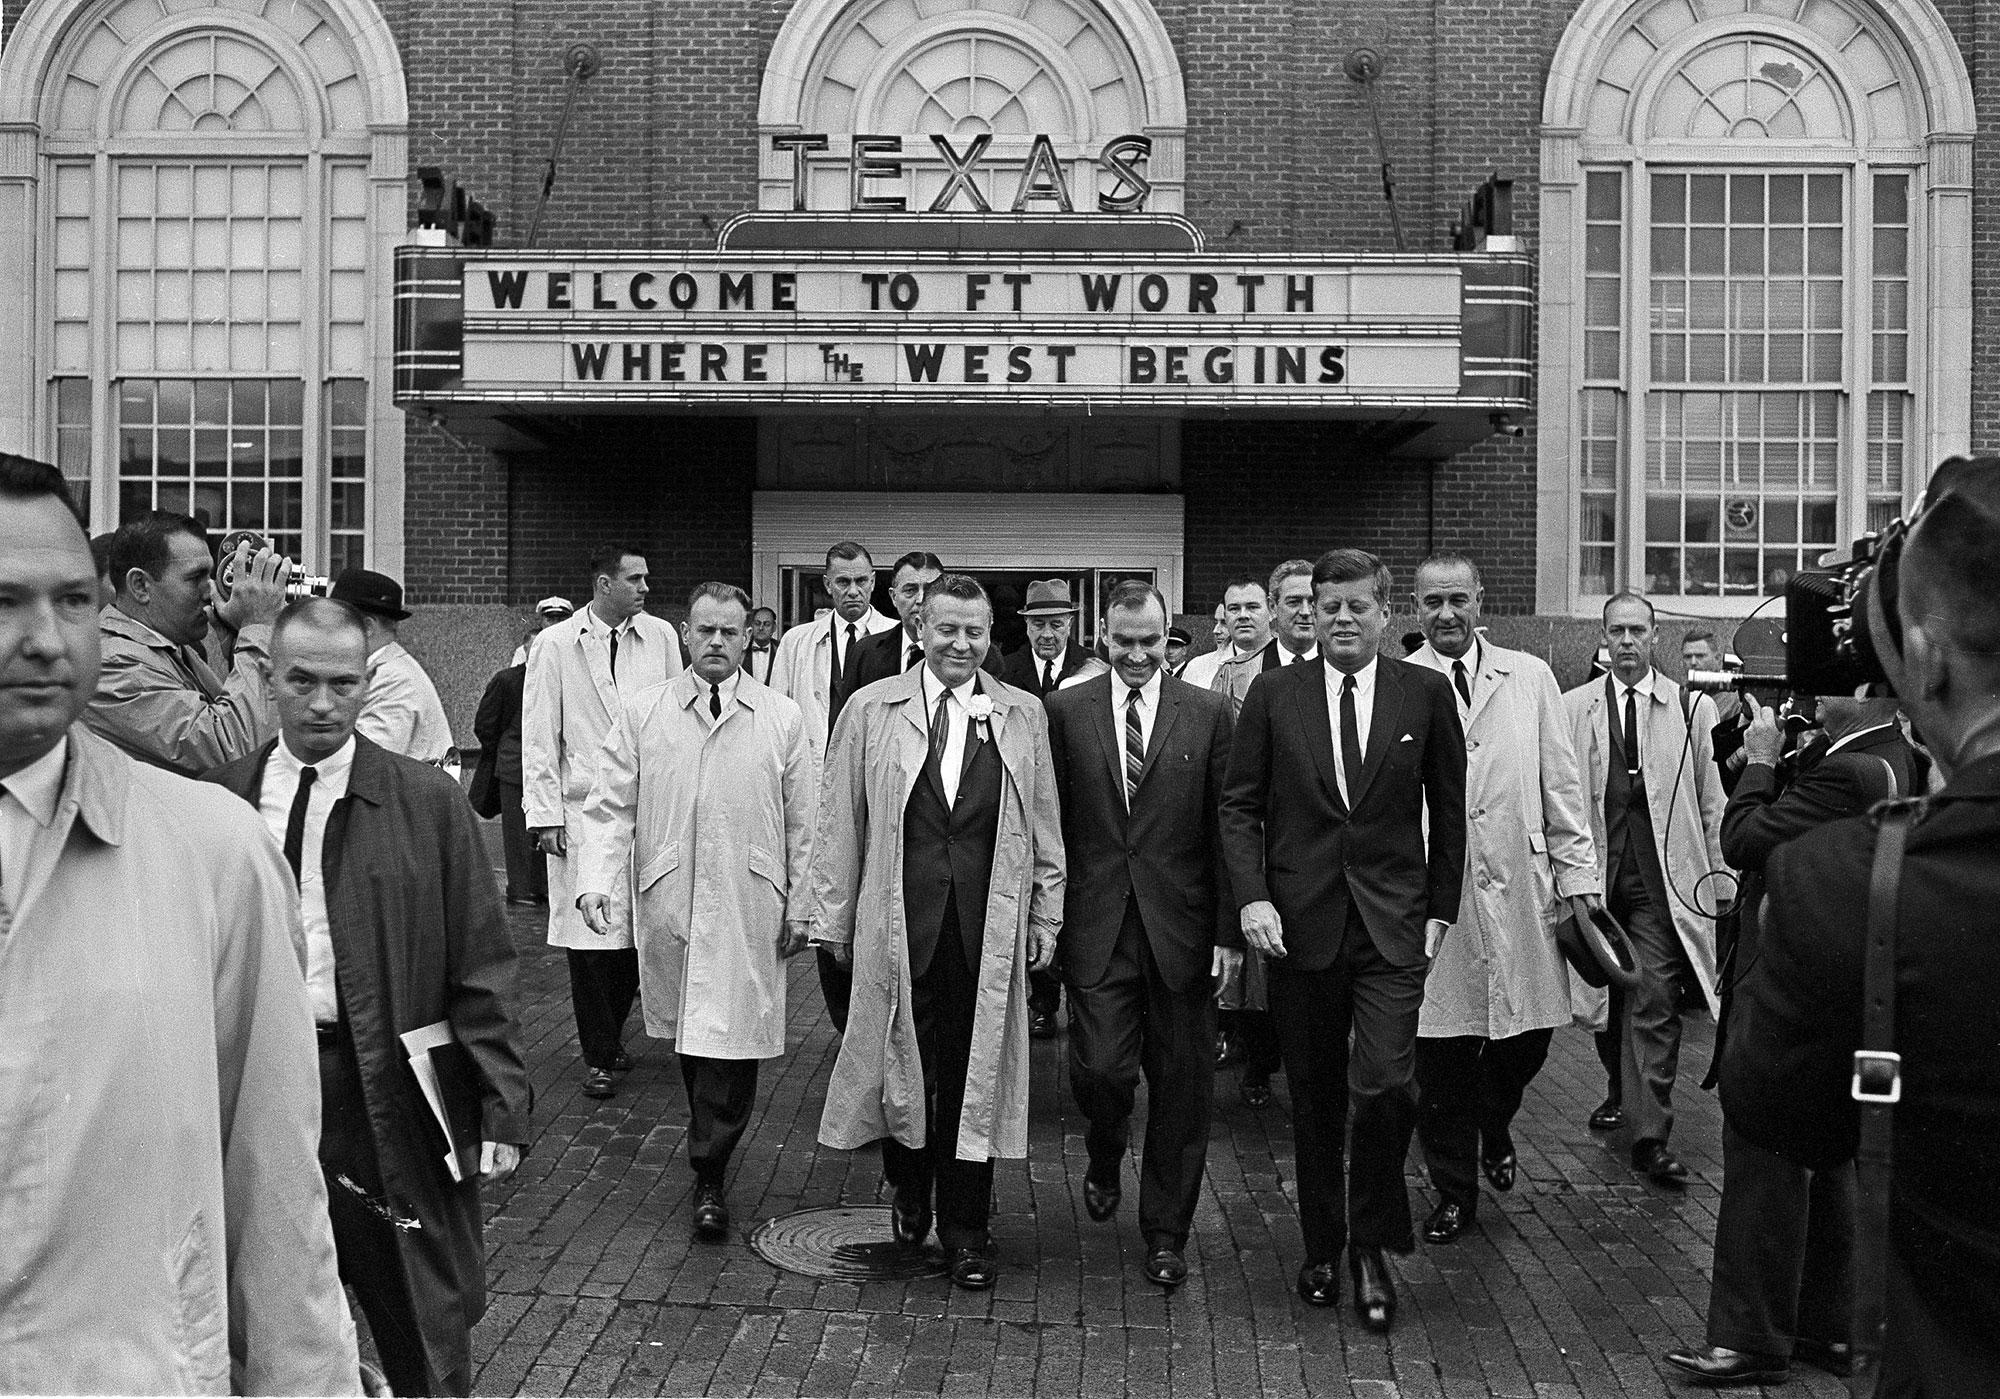 President John F. Kennedy, front, right, exits the Hotel Texas in Fort Worth, at 8:45 a.m., Nov. 22, 1963. He is on his way to greet crowds and make a speech. At right holding hat and wearing raincoat is Vice President Lyndon B. Johnson. (Photo: AP)